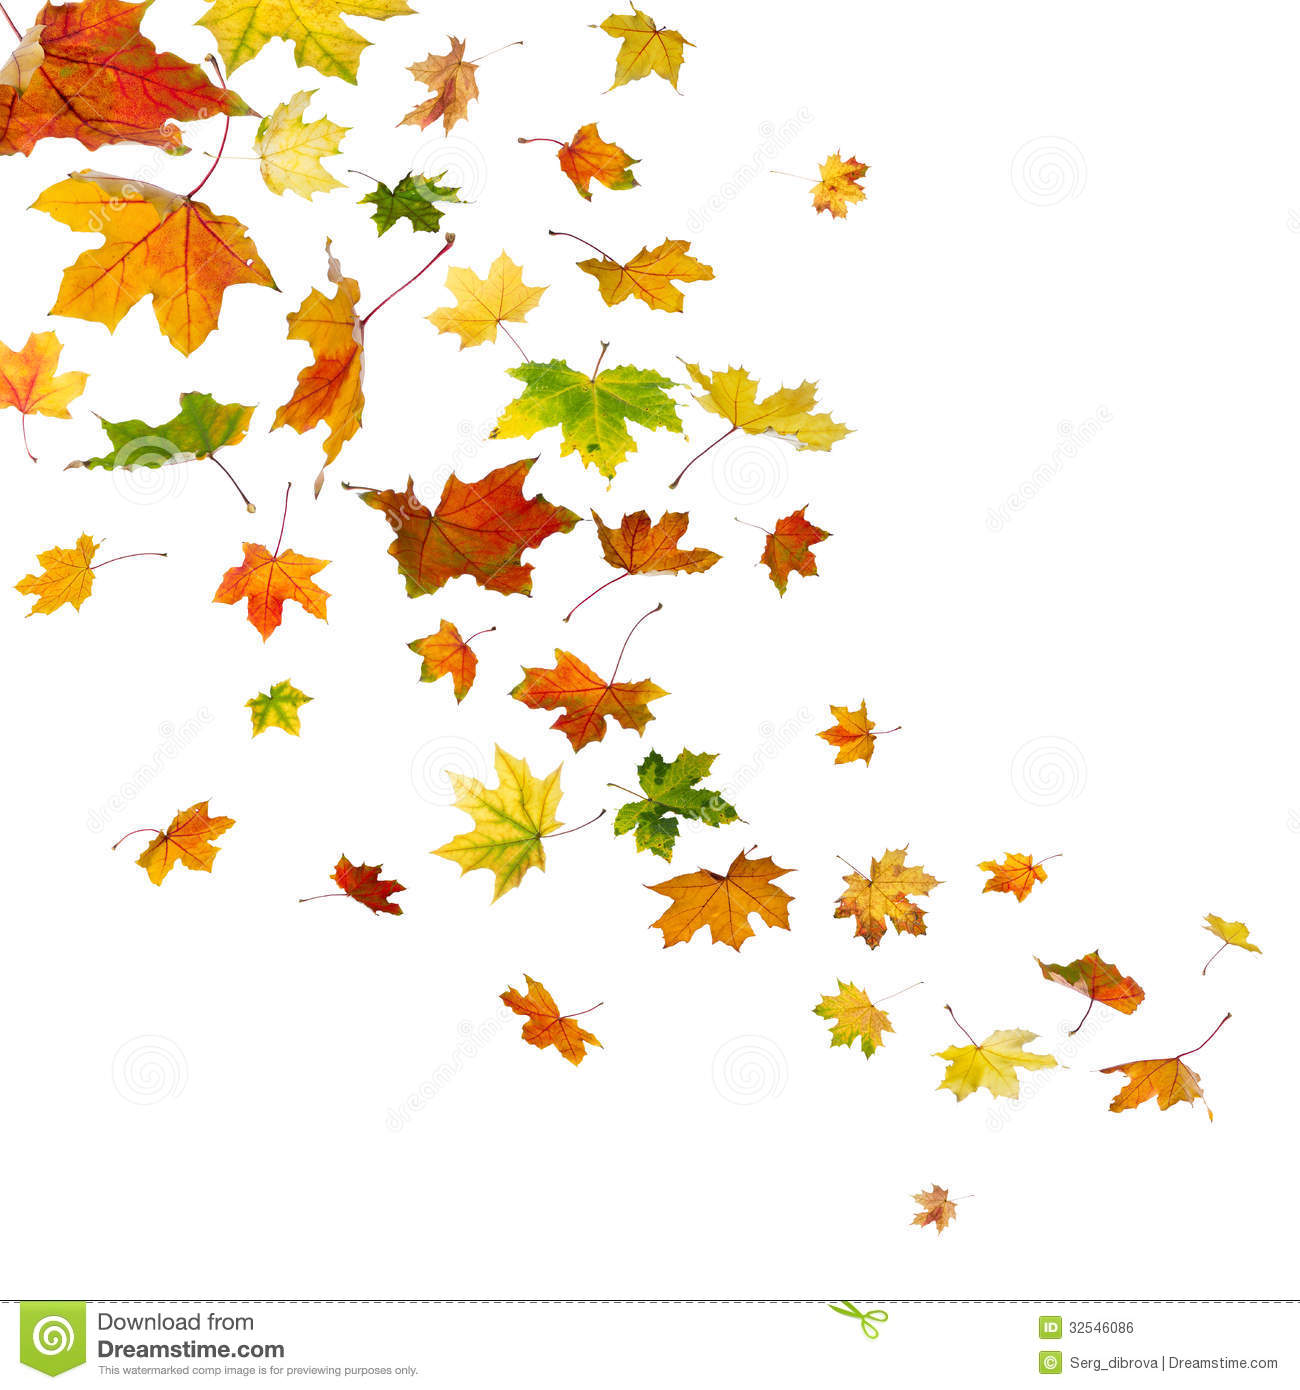 hight resolution of go back images for animated f falling leaves clipart